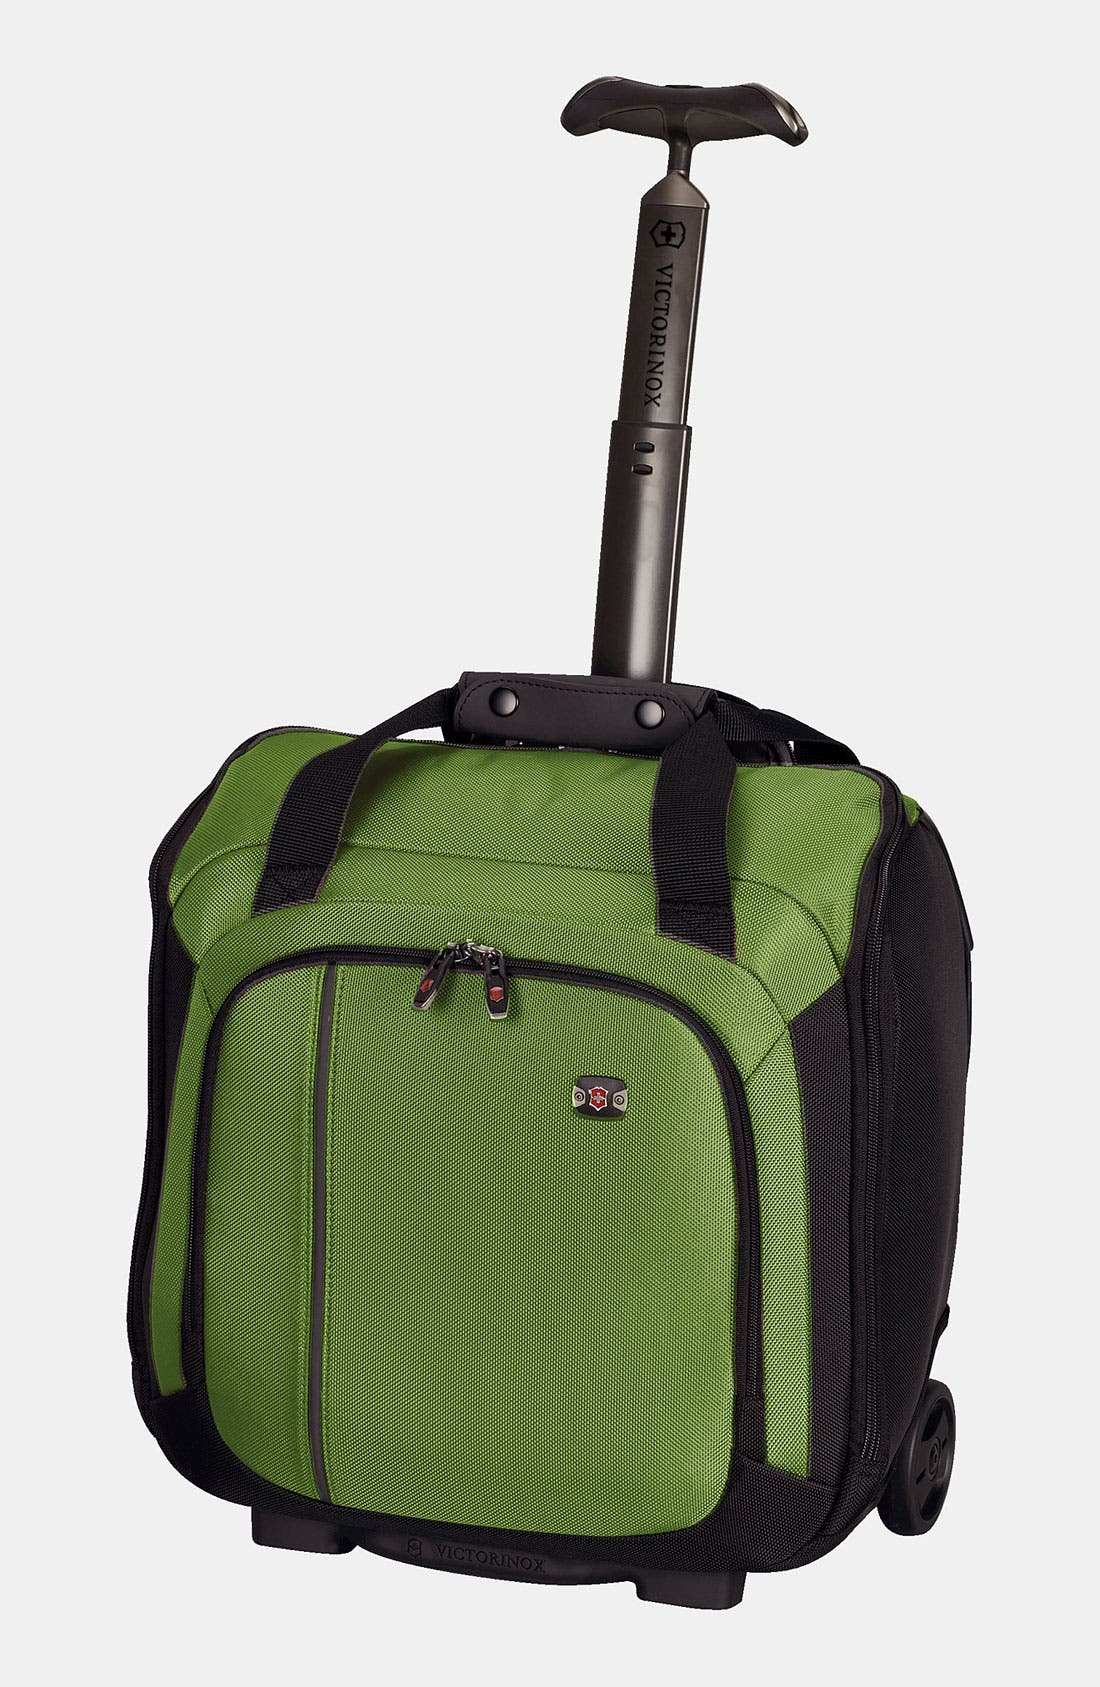 Main Image - Victorinox Swiss Army® Small Rolling Carry-On (16 Inch)